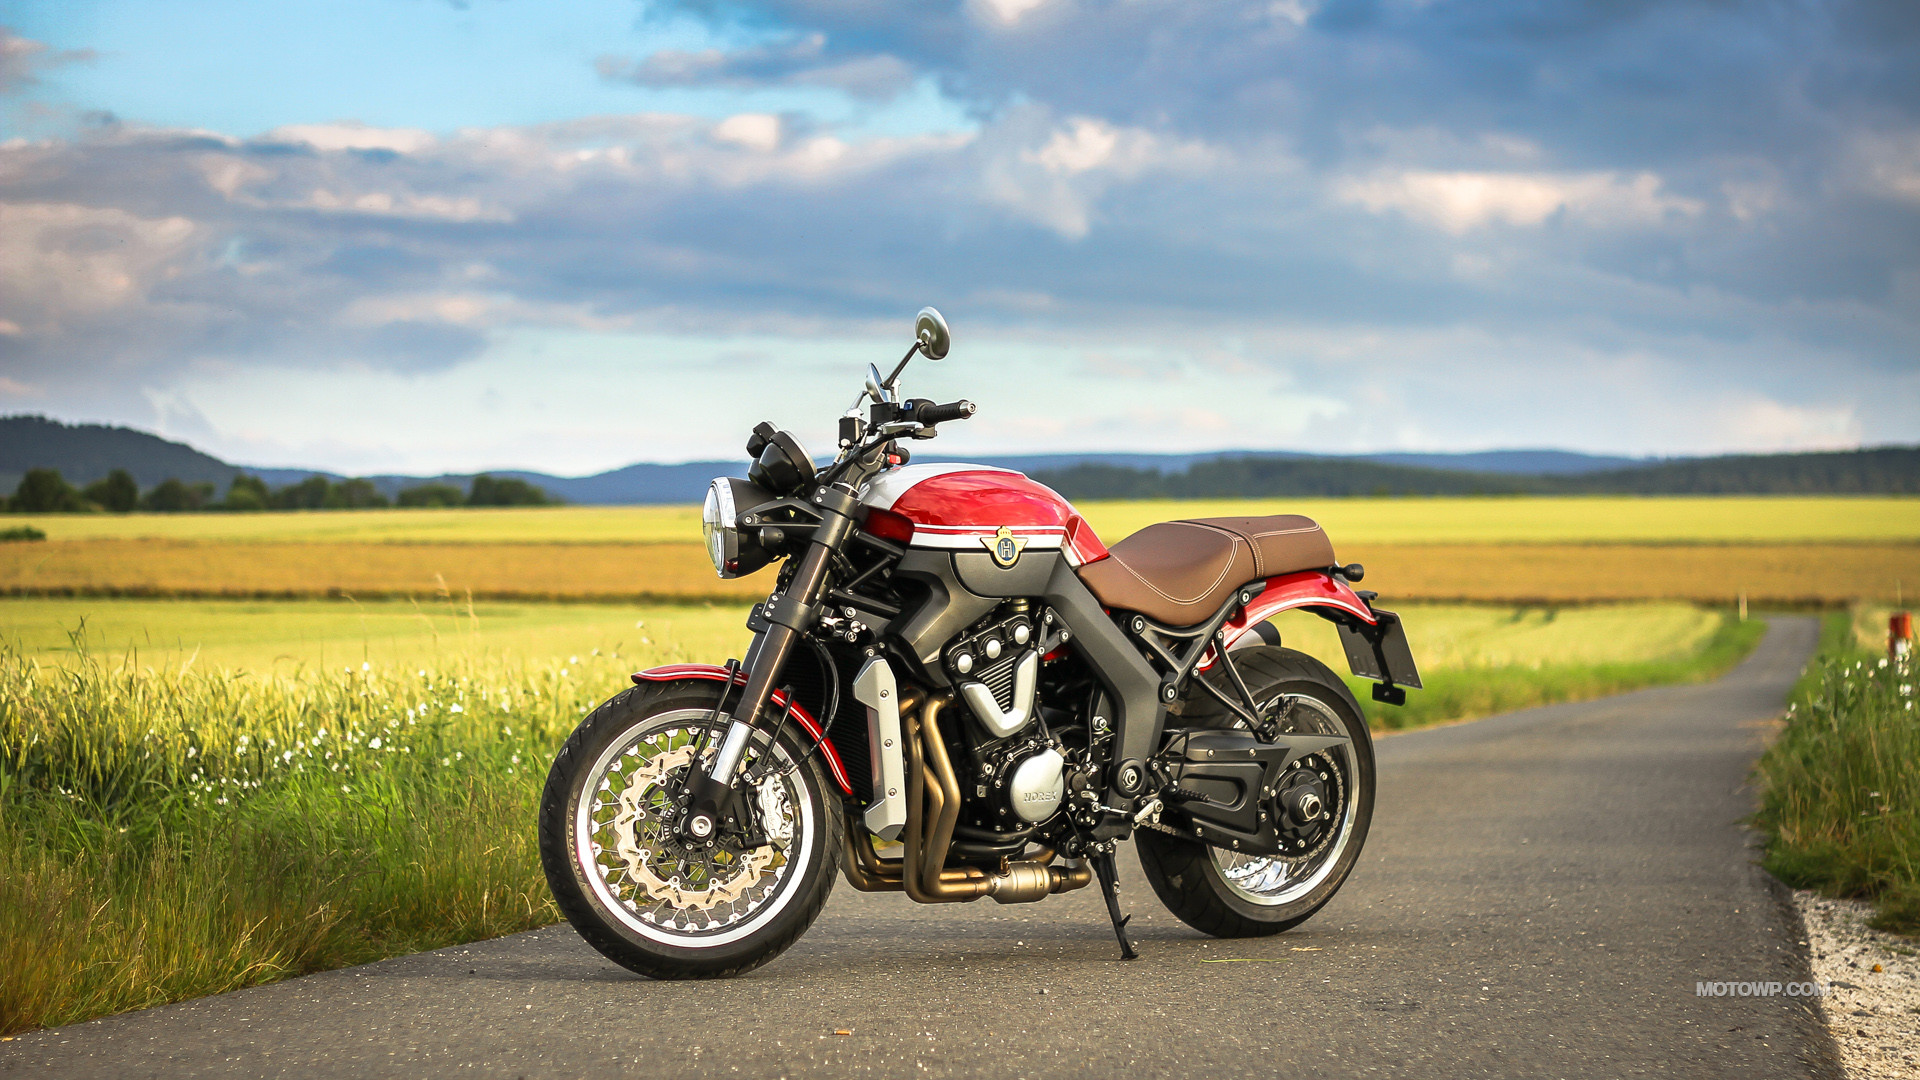 Res: 1920x1080, Motorcycle wallpapers Horex VR6 Classic - 2014 - Motorcycles wallpapers